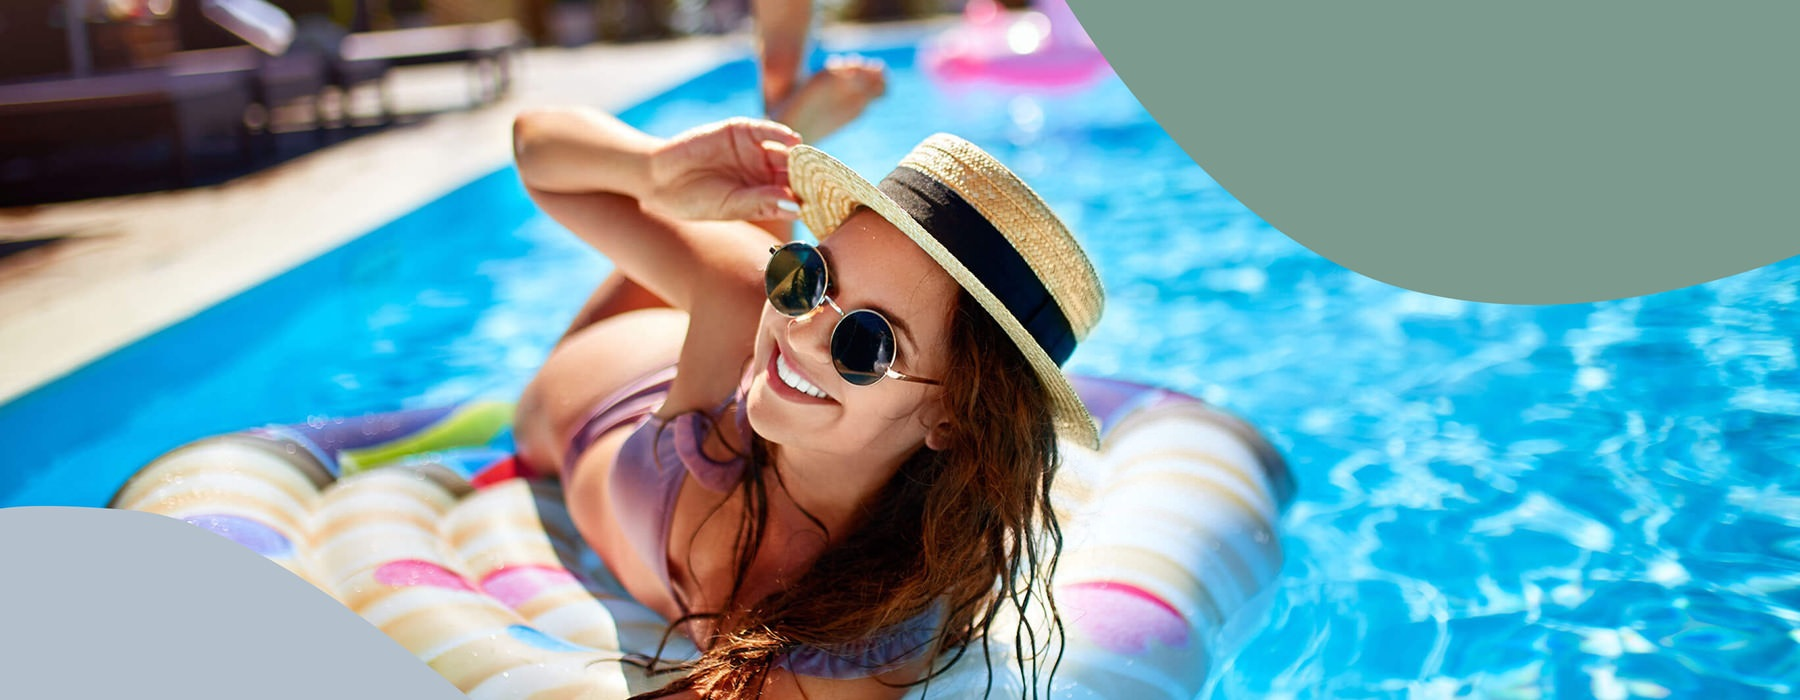 Young Woman On Pool Floatie In Pool